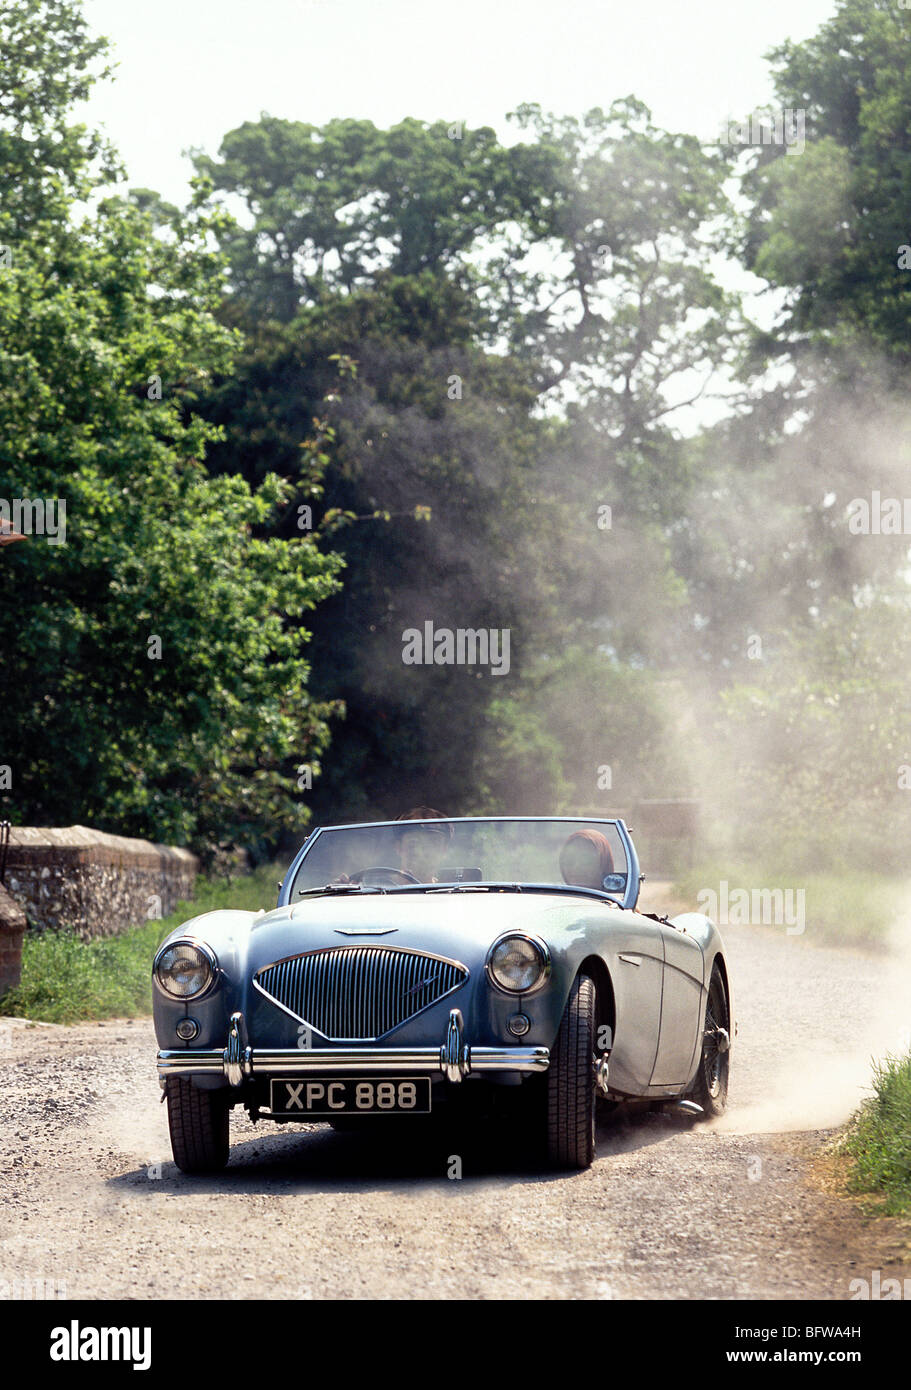 Austin Healey 3000 1960 Stockbild